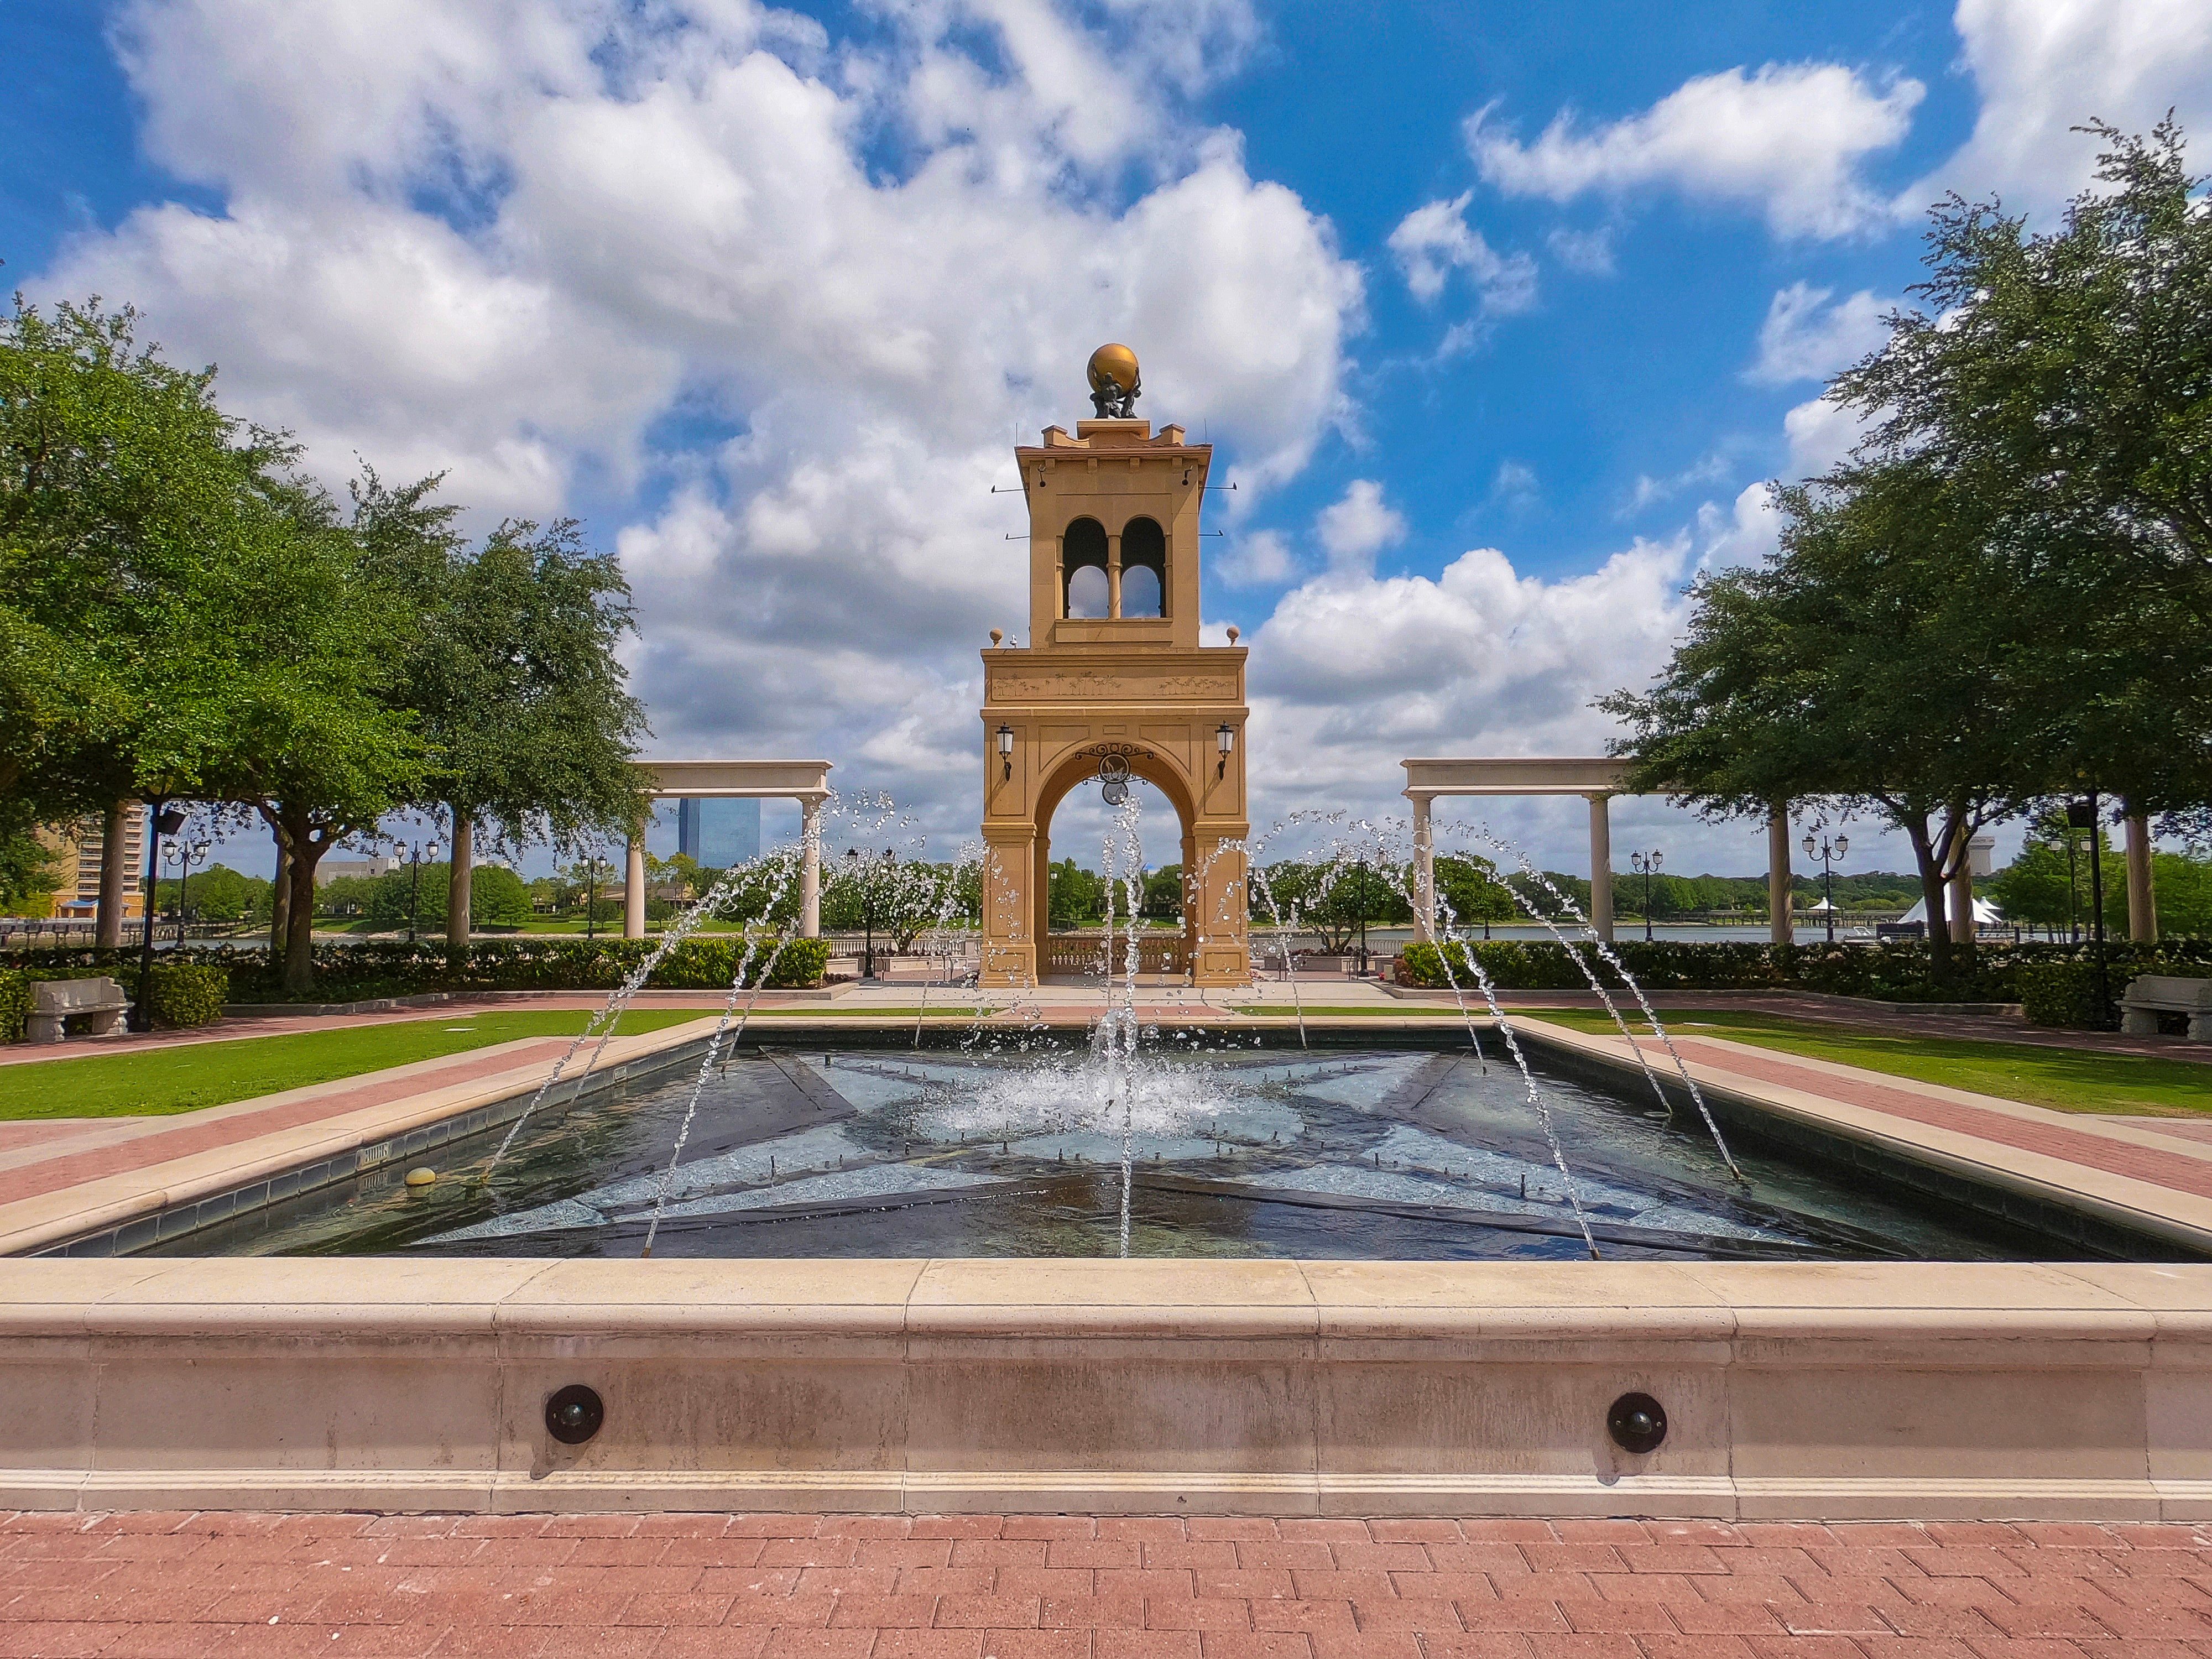 Altamonte Springs, Florida USA - May 9, 2019 - Cranes Roost Park fountain and tower in the background. Brittx, Shutterstock